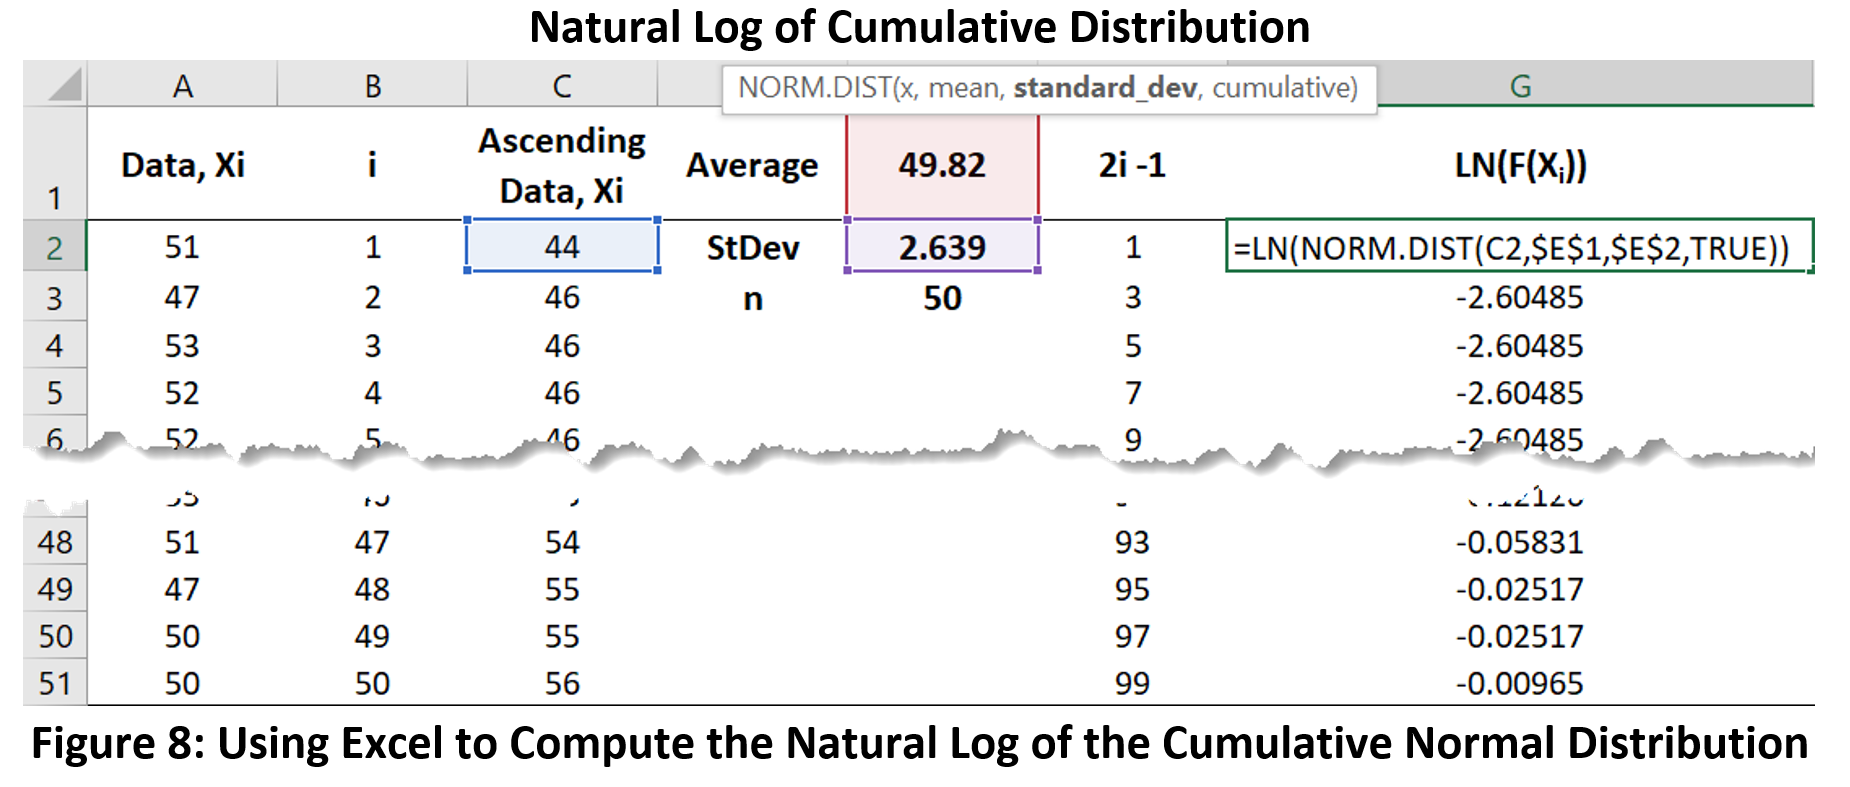 Figure 8: Cumulative Normal Distribution Calculations